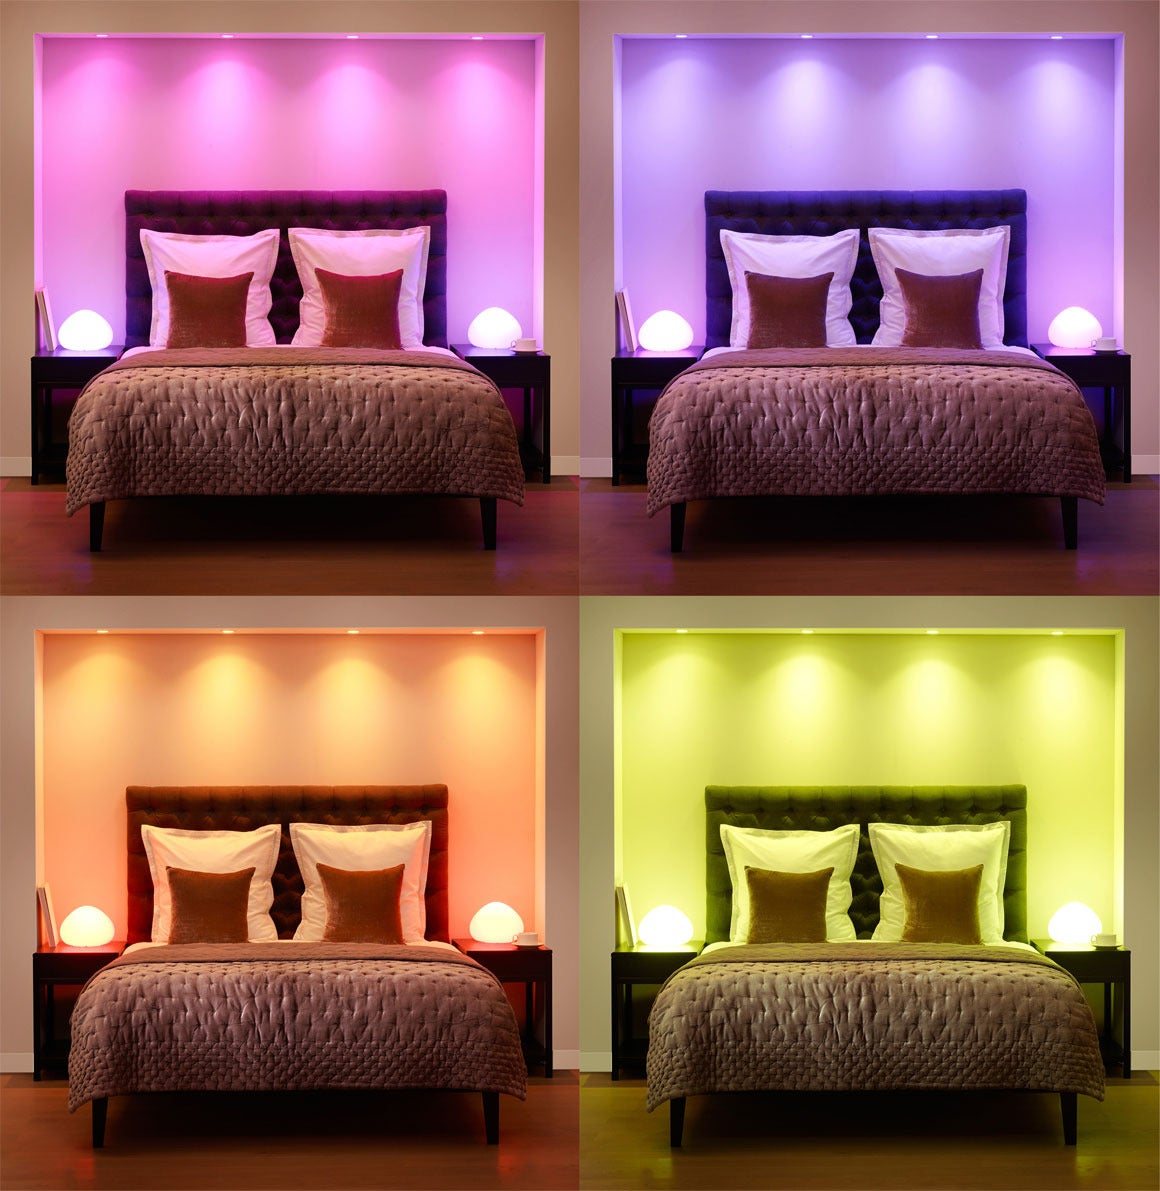 How to optimize your home lighting design based on color for Design bedroom lighting